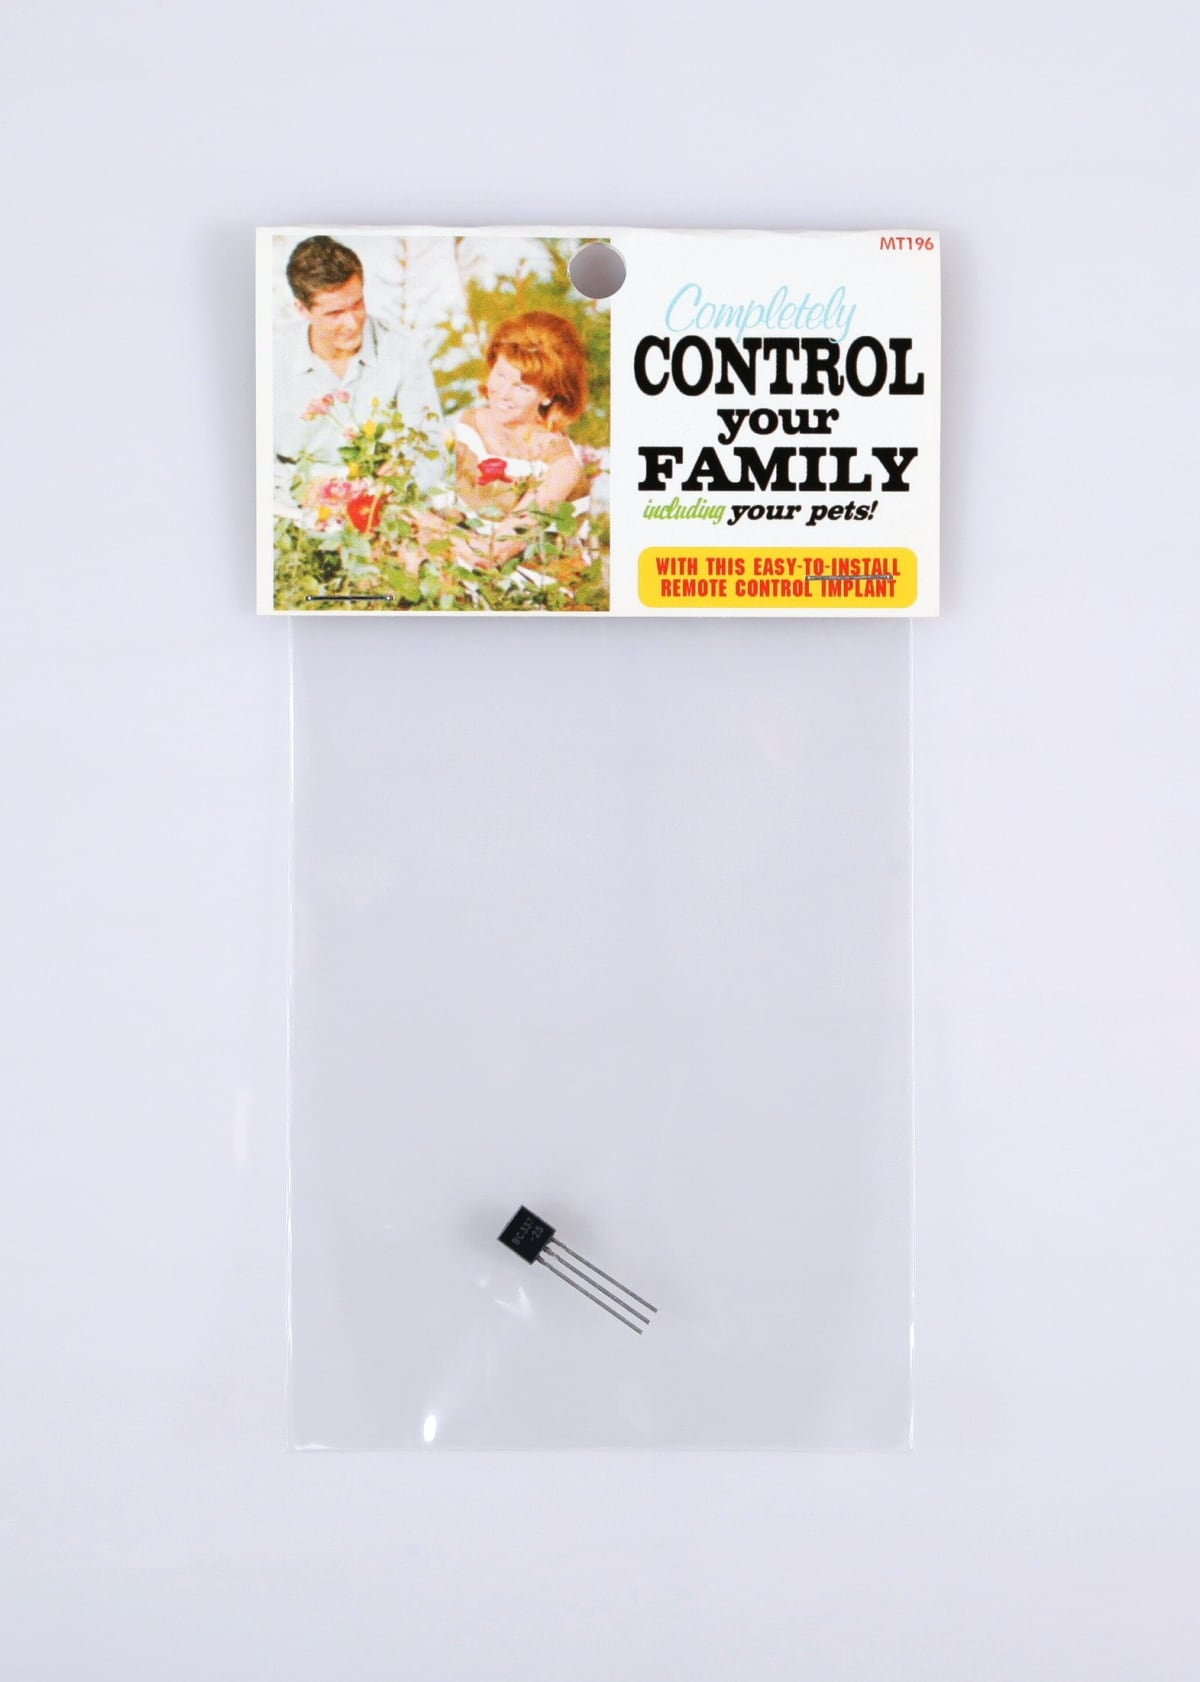 Control your family, 2006